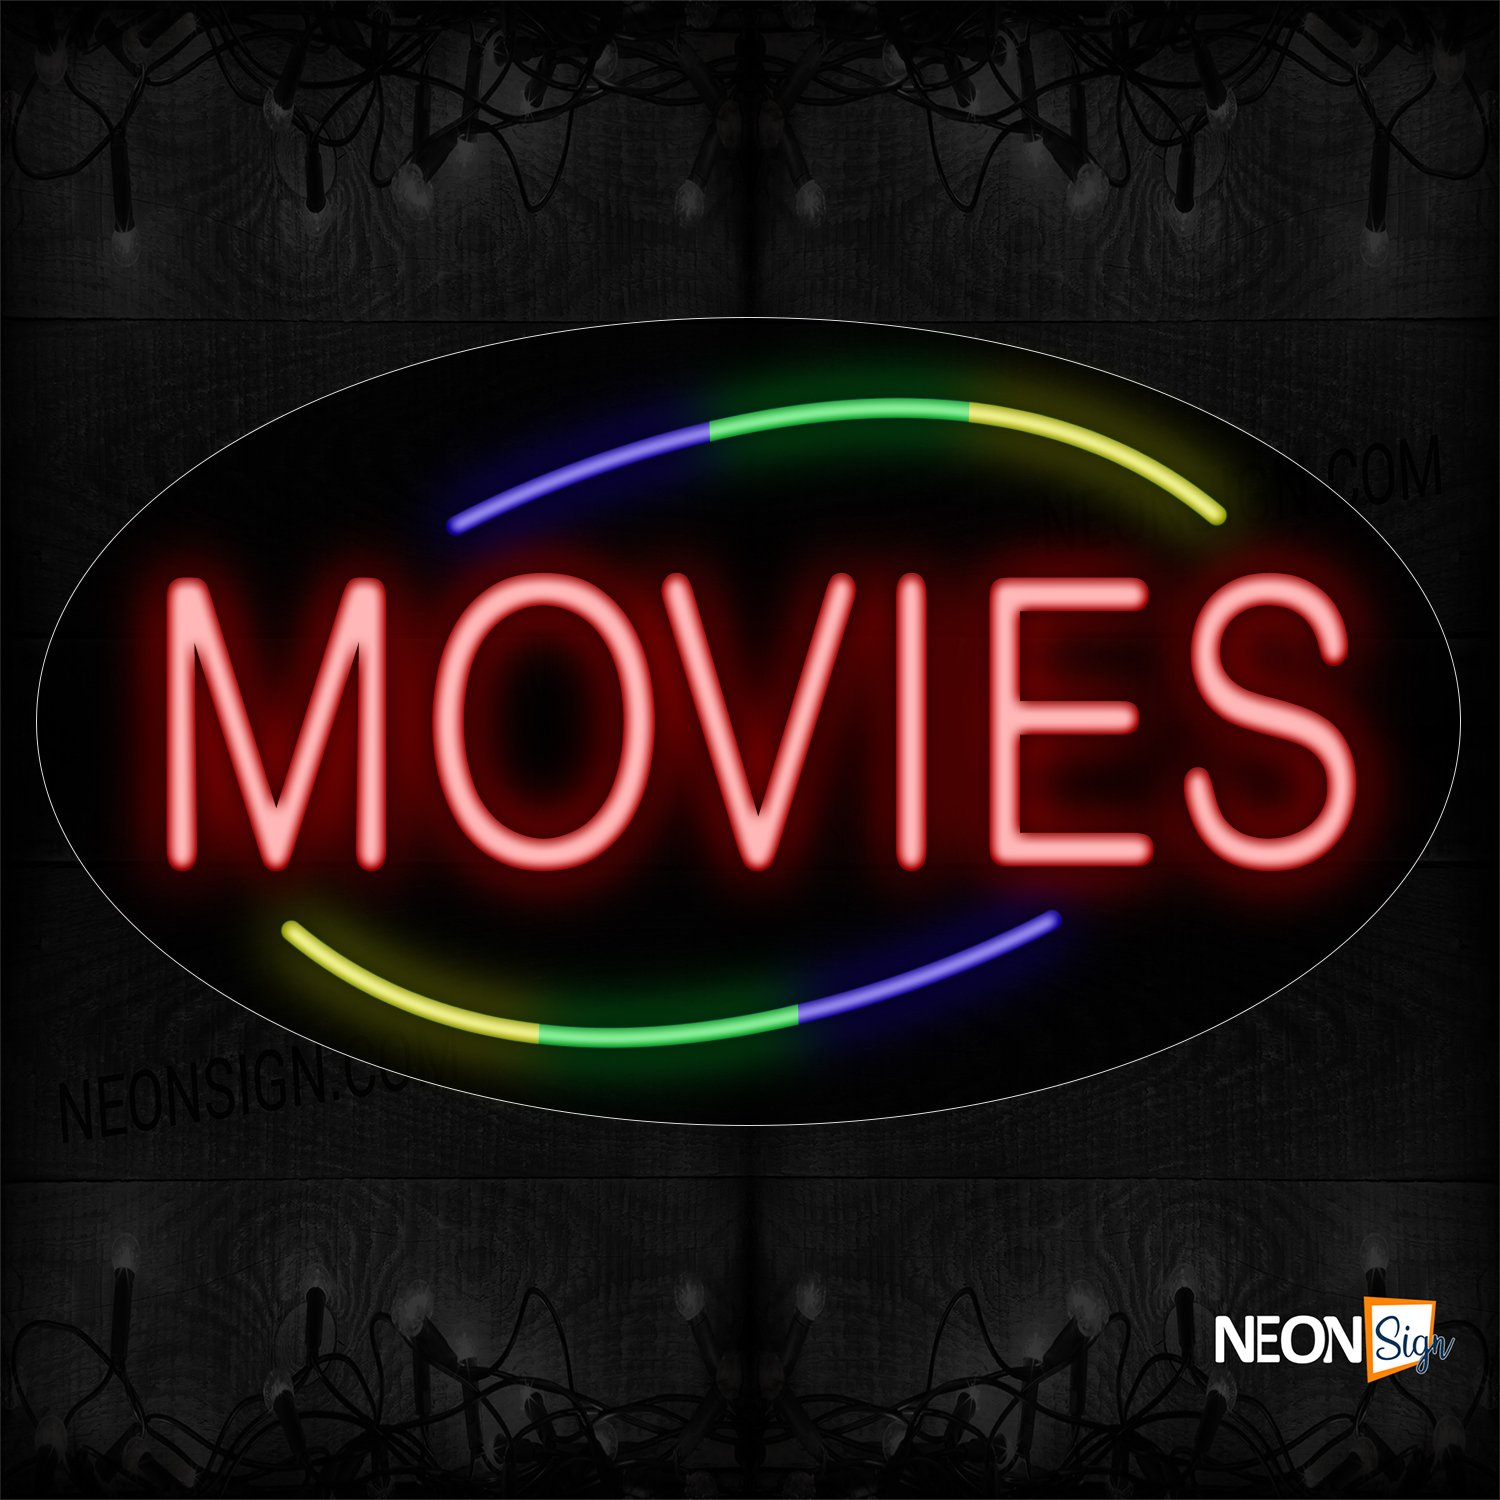 Image of 14252 Movies With Circle Border Neon Sign_17x30 Contoured Black Backing